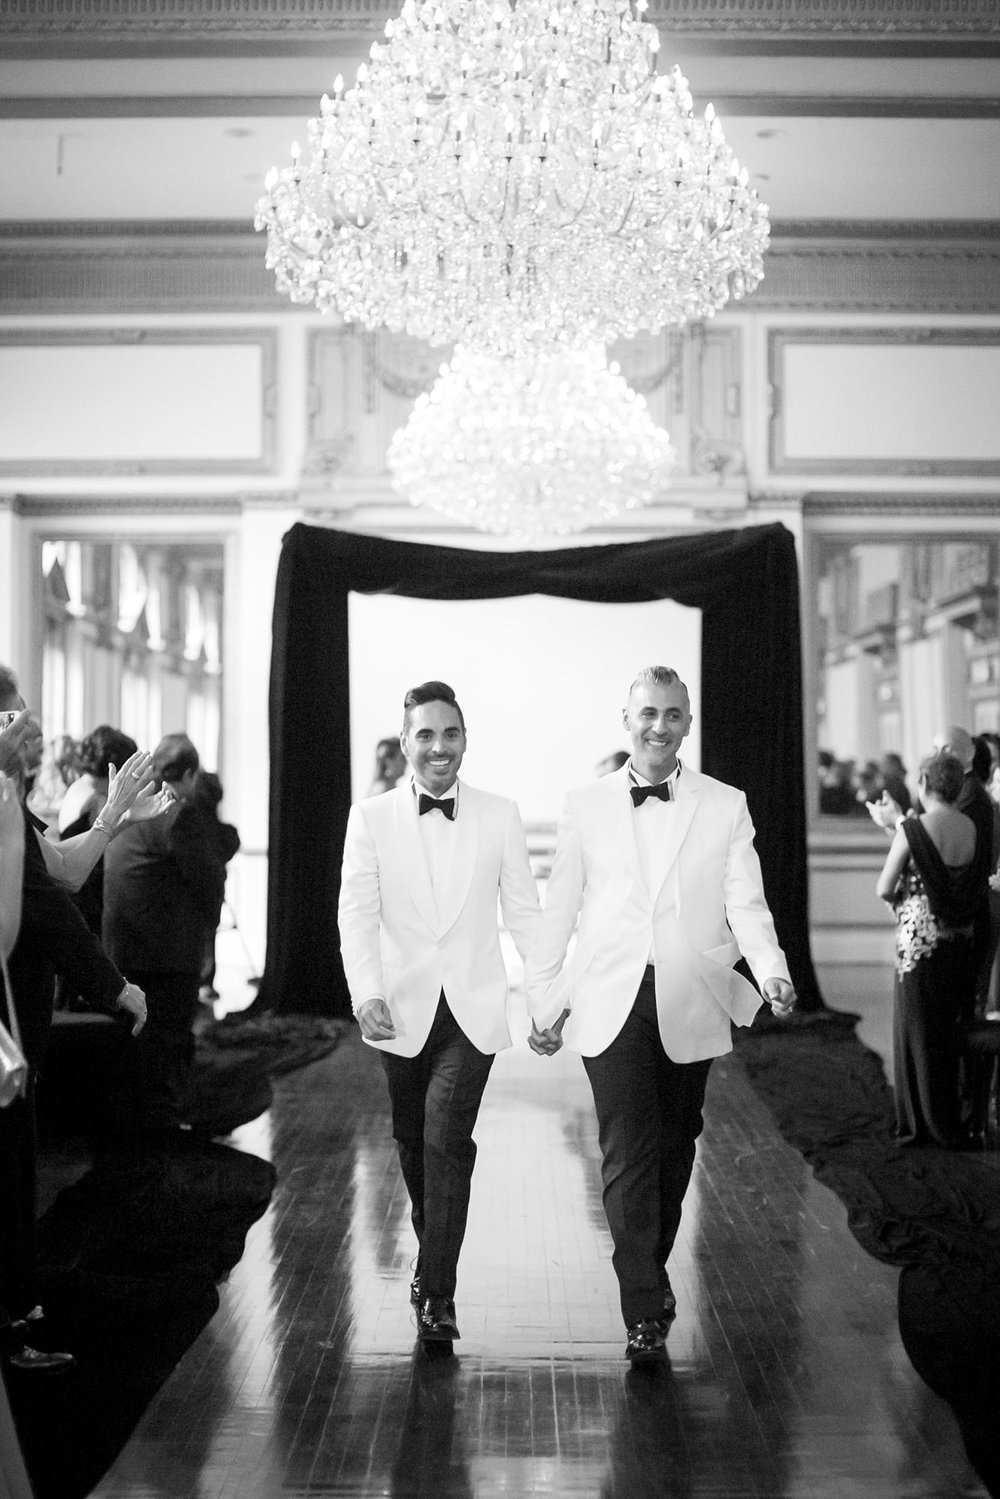 Alexandria Ballrooms Wedding | Miki & Sonja Photography | mikiandsonja.com